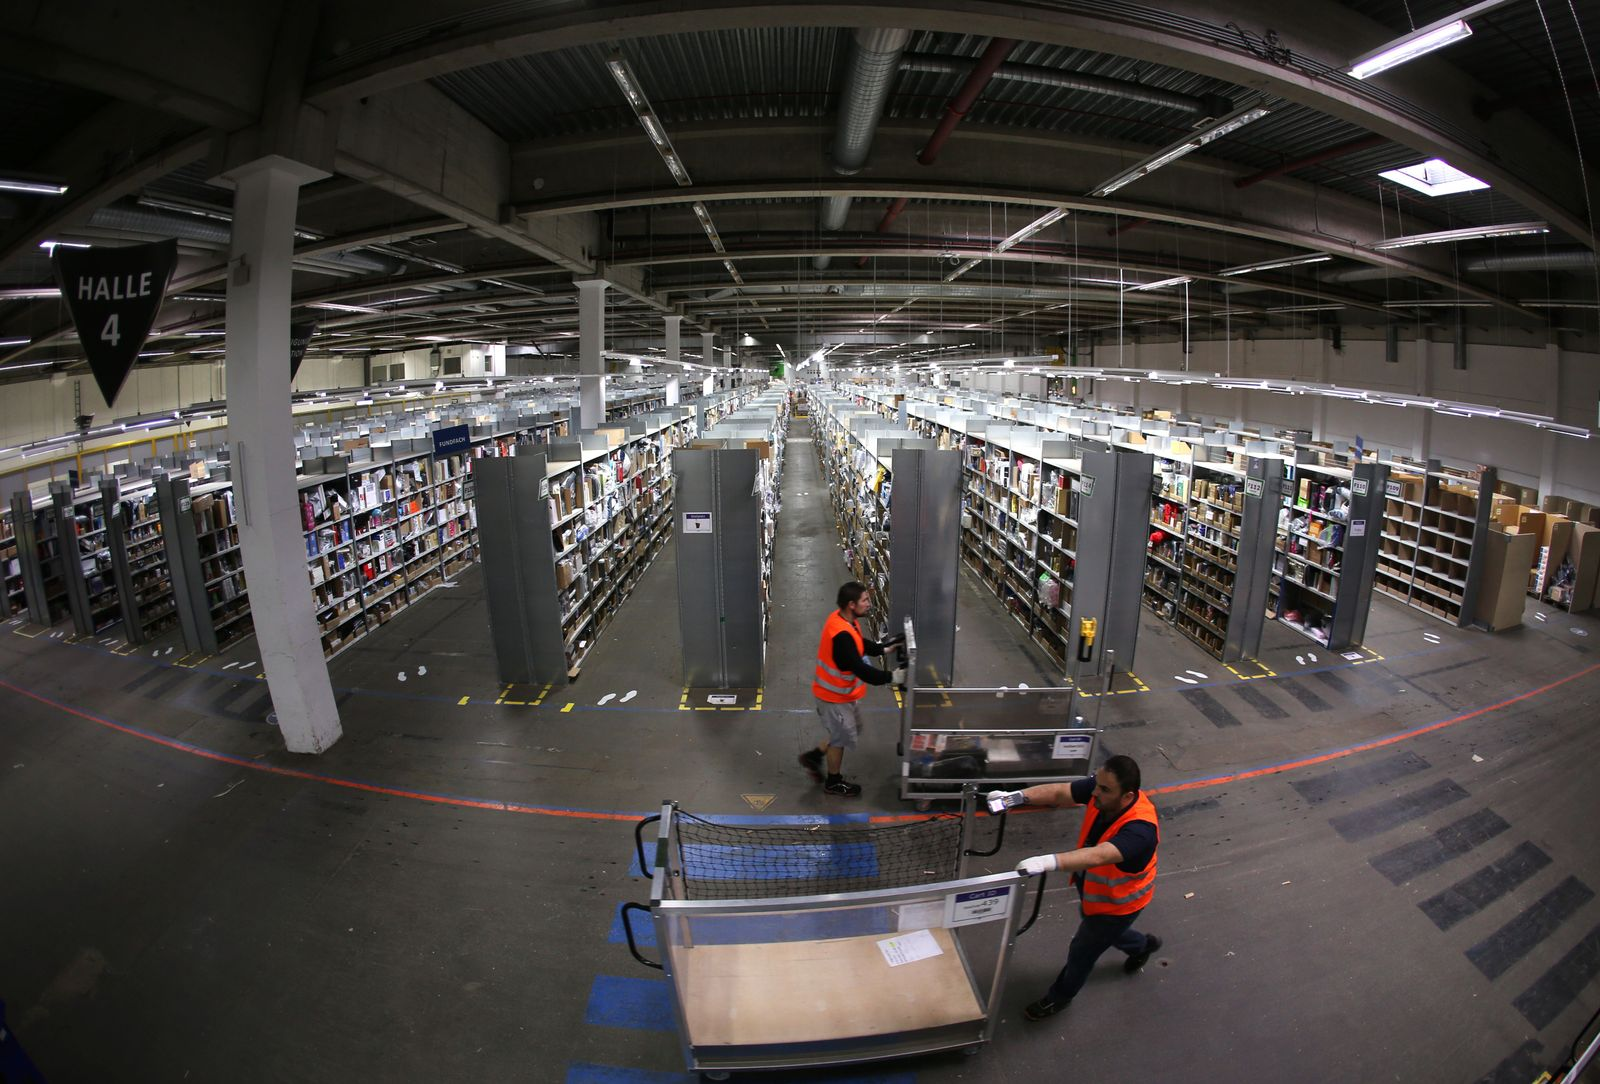 Amazon/ Logistikzentrum Werne